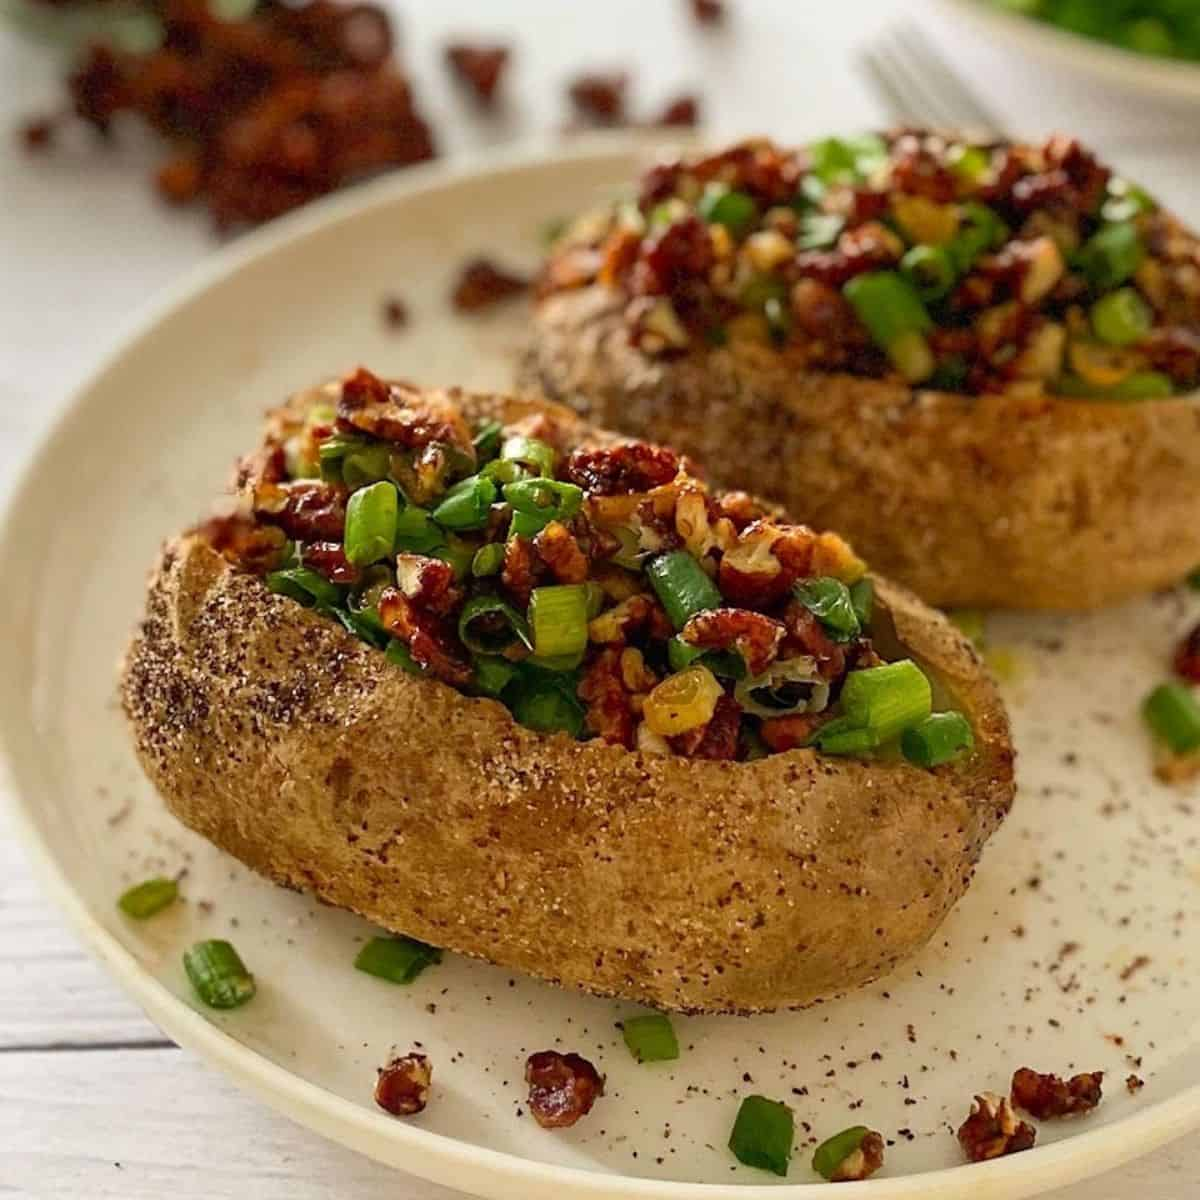 Two baked potatoes in plate, topped with vegan bacon and green onion.